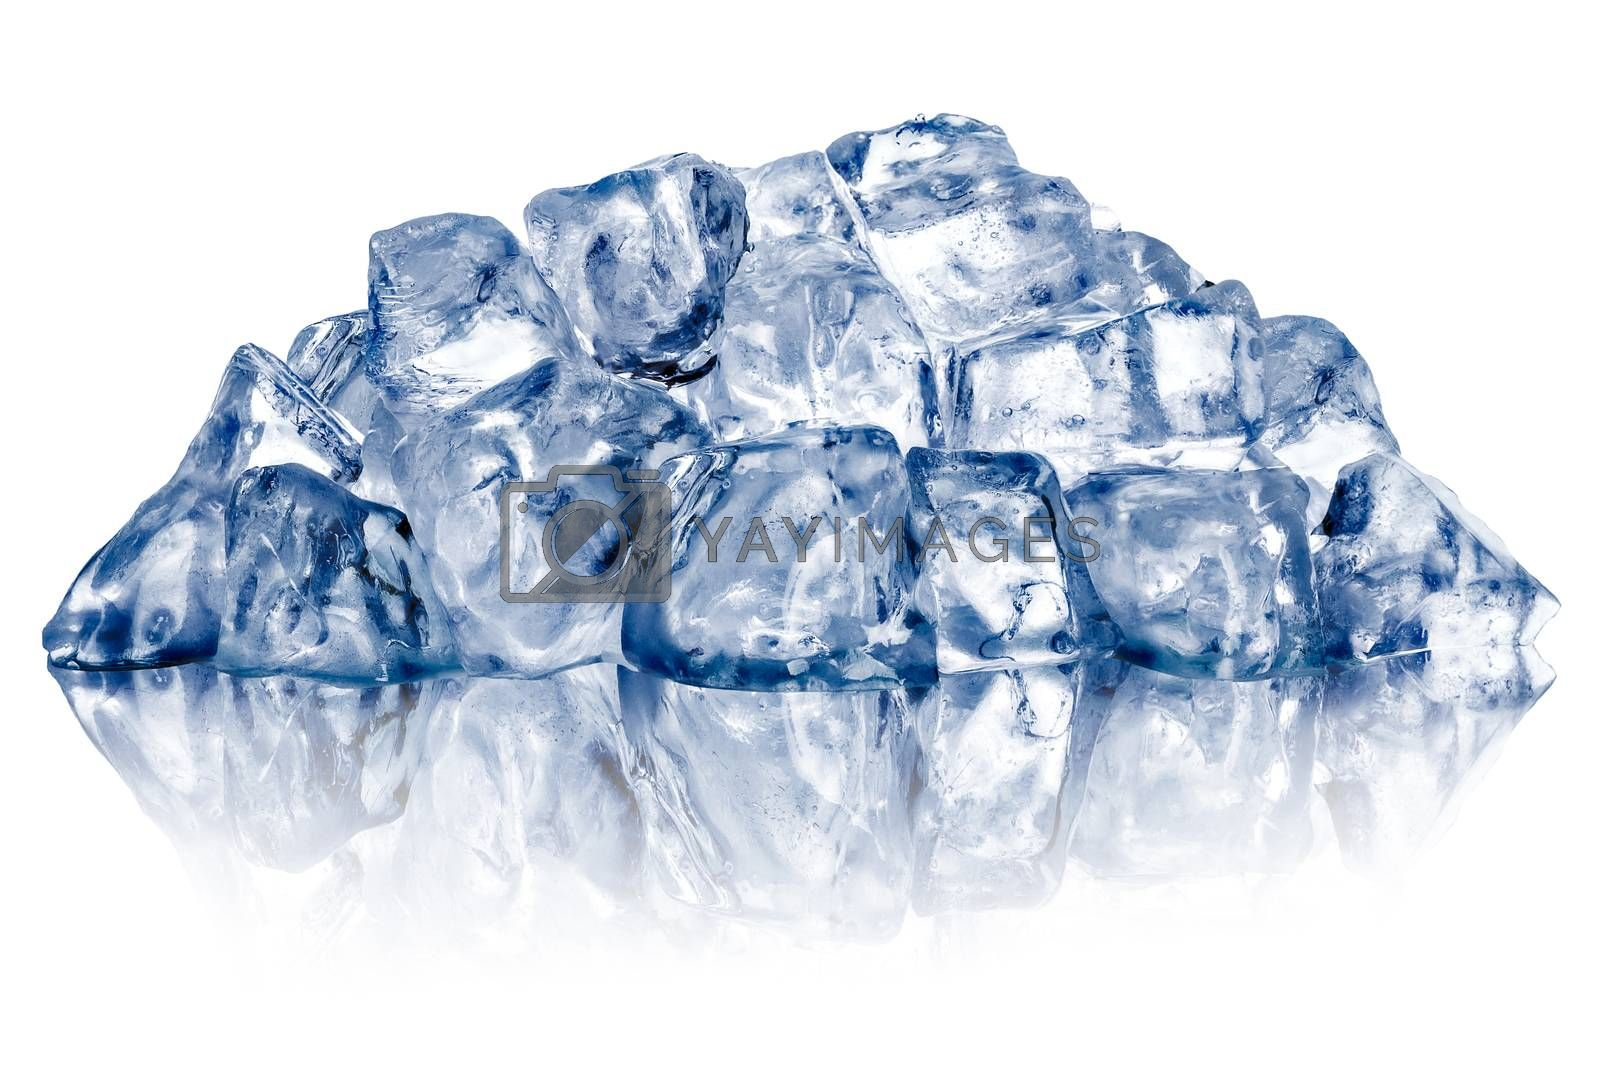 Heap of rough crushed ice, irregular shaped, dry, with fake reflection. Clipping paths for ice and reflection